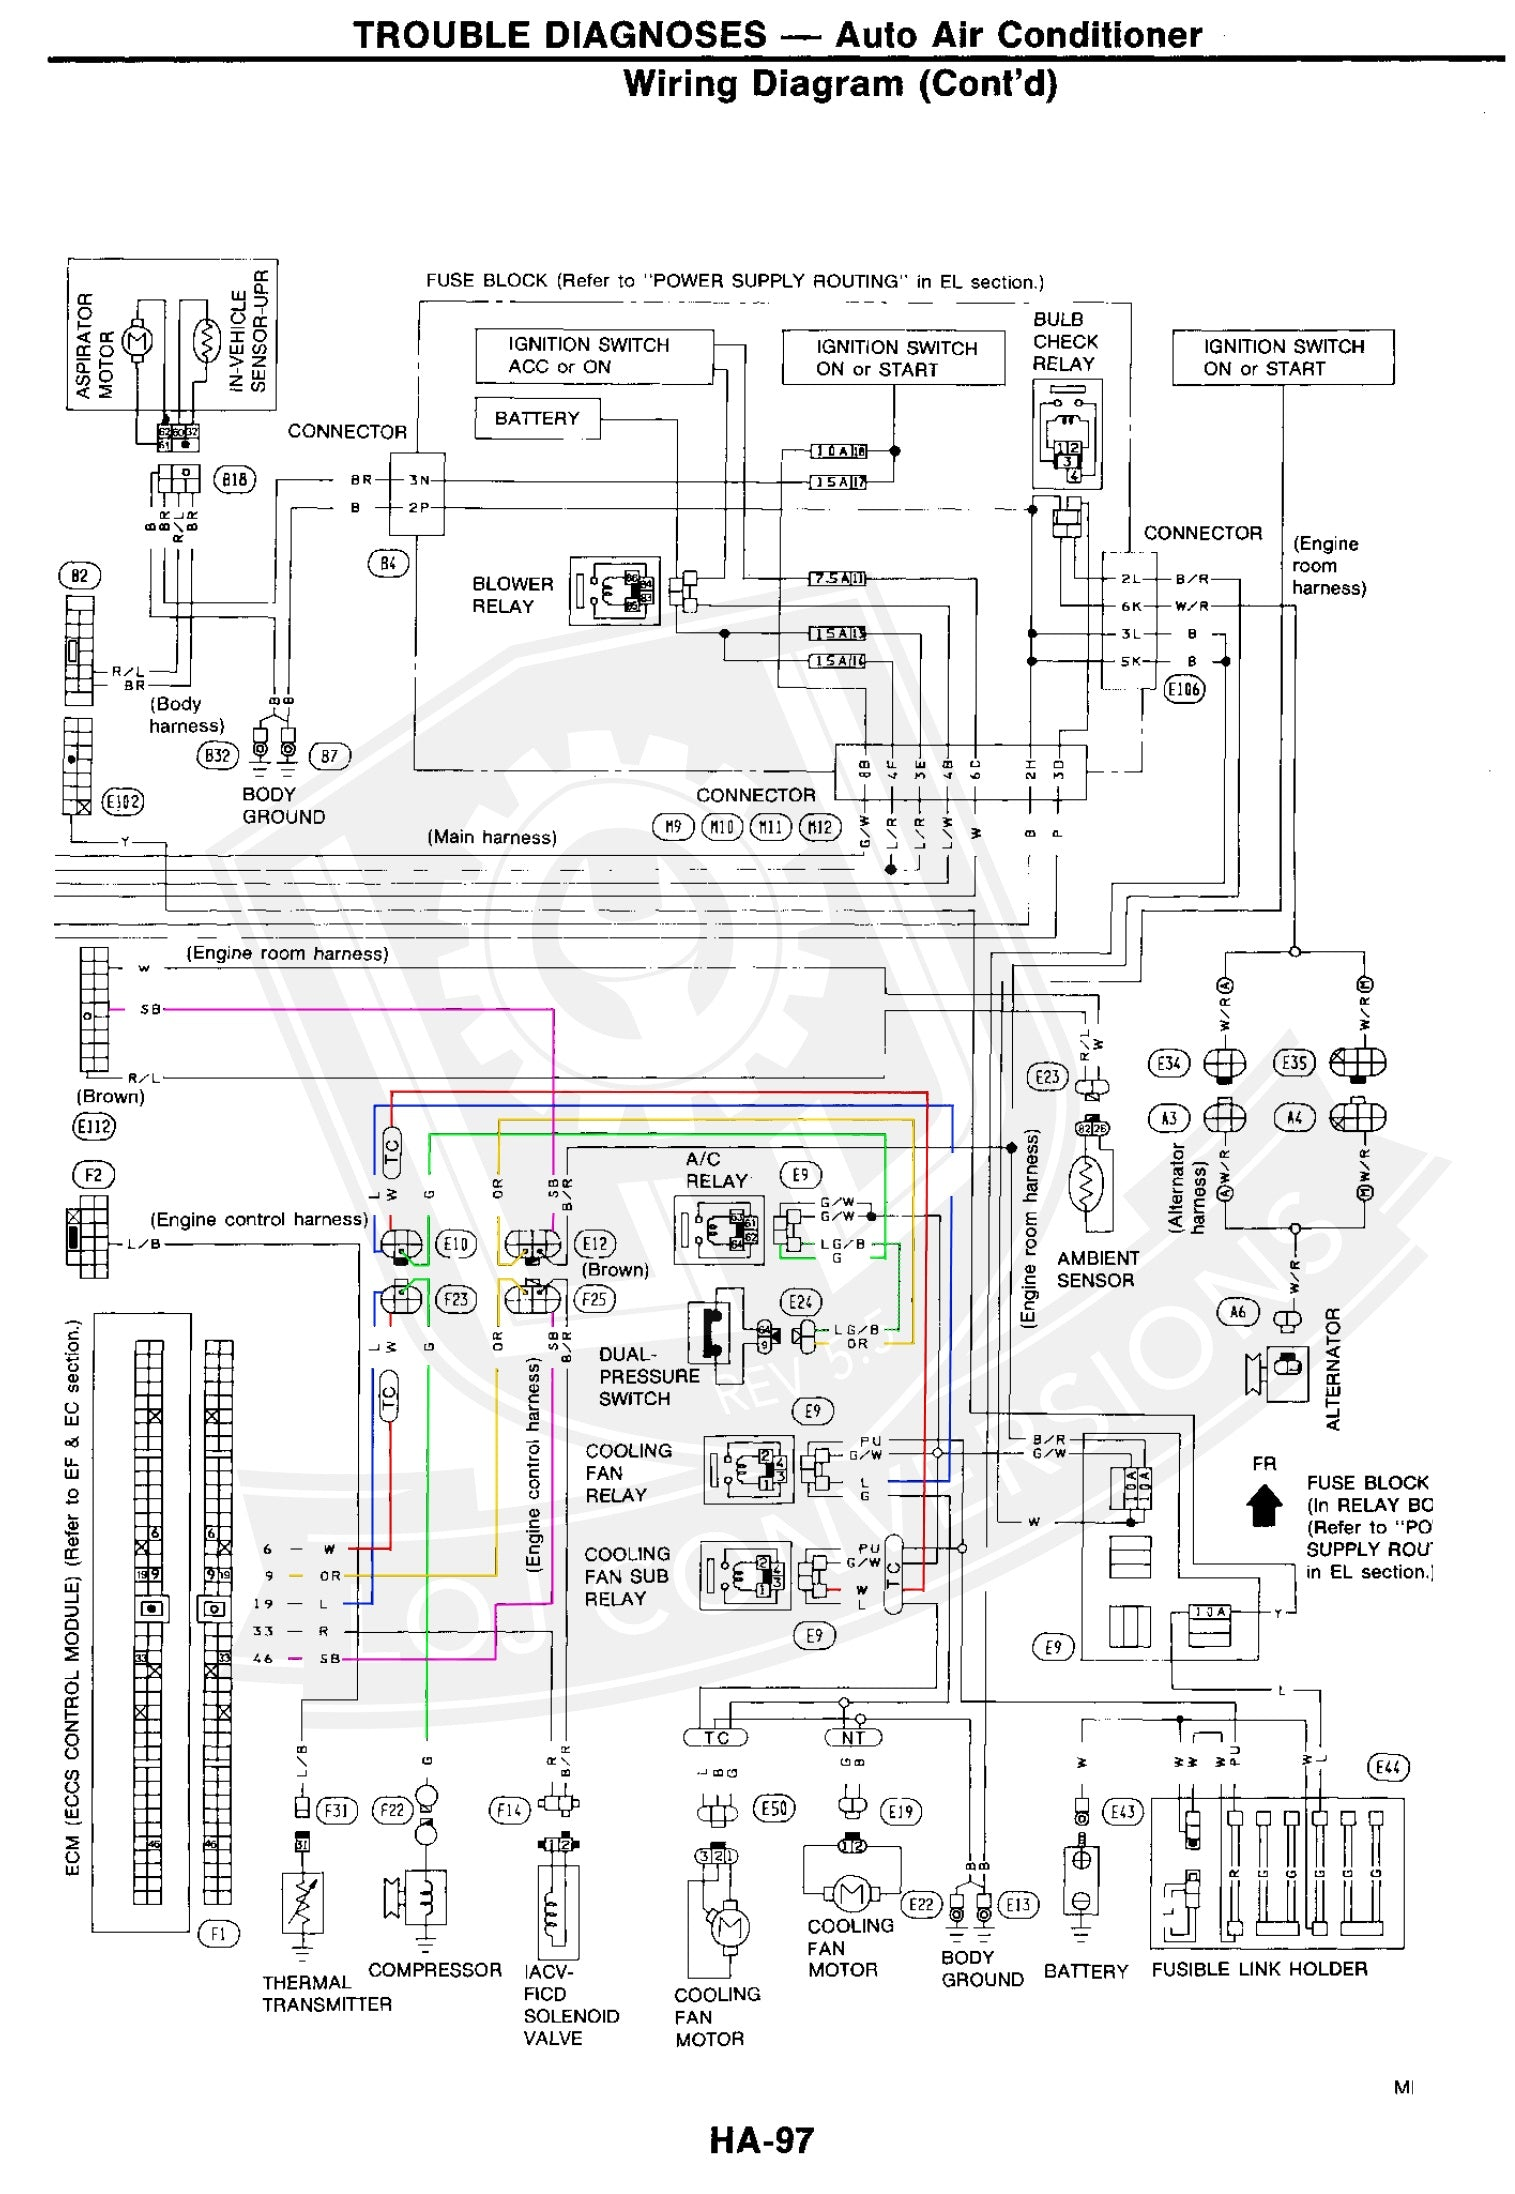 240sx ac wiring diagram simple wiring diagram rh 50 mara cujas de Code Reader 1995 Nissan 240SX KA24DE Diagram